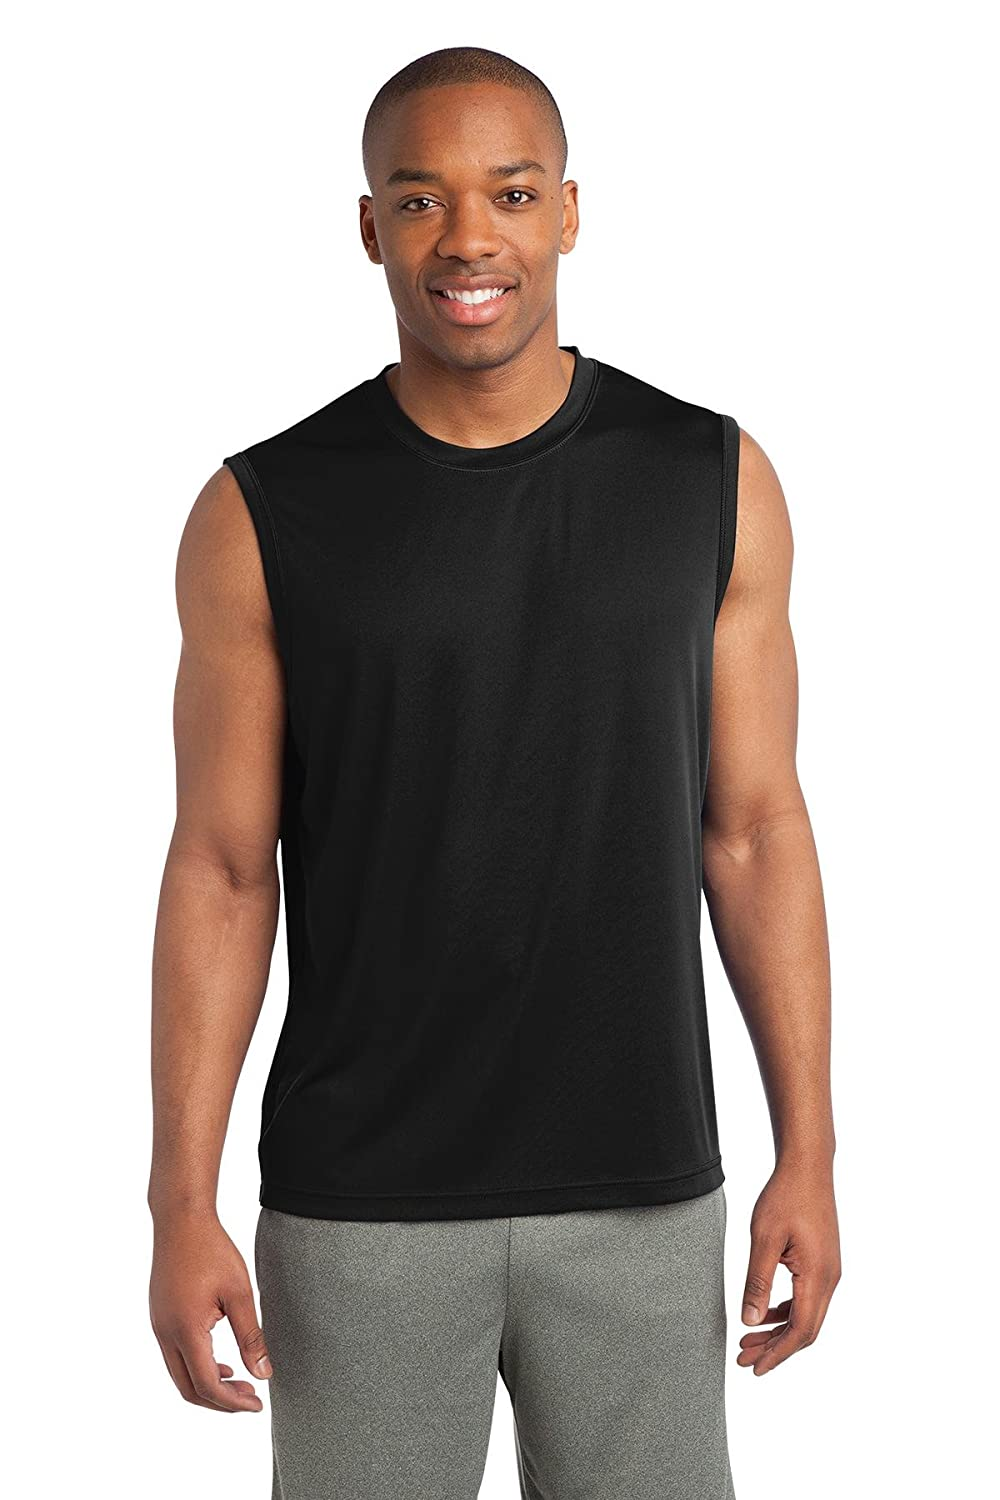 Black L Clementine Mens Sleeveless PosiCharge Competitor Tee ST352